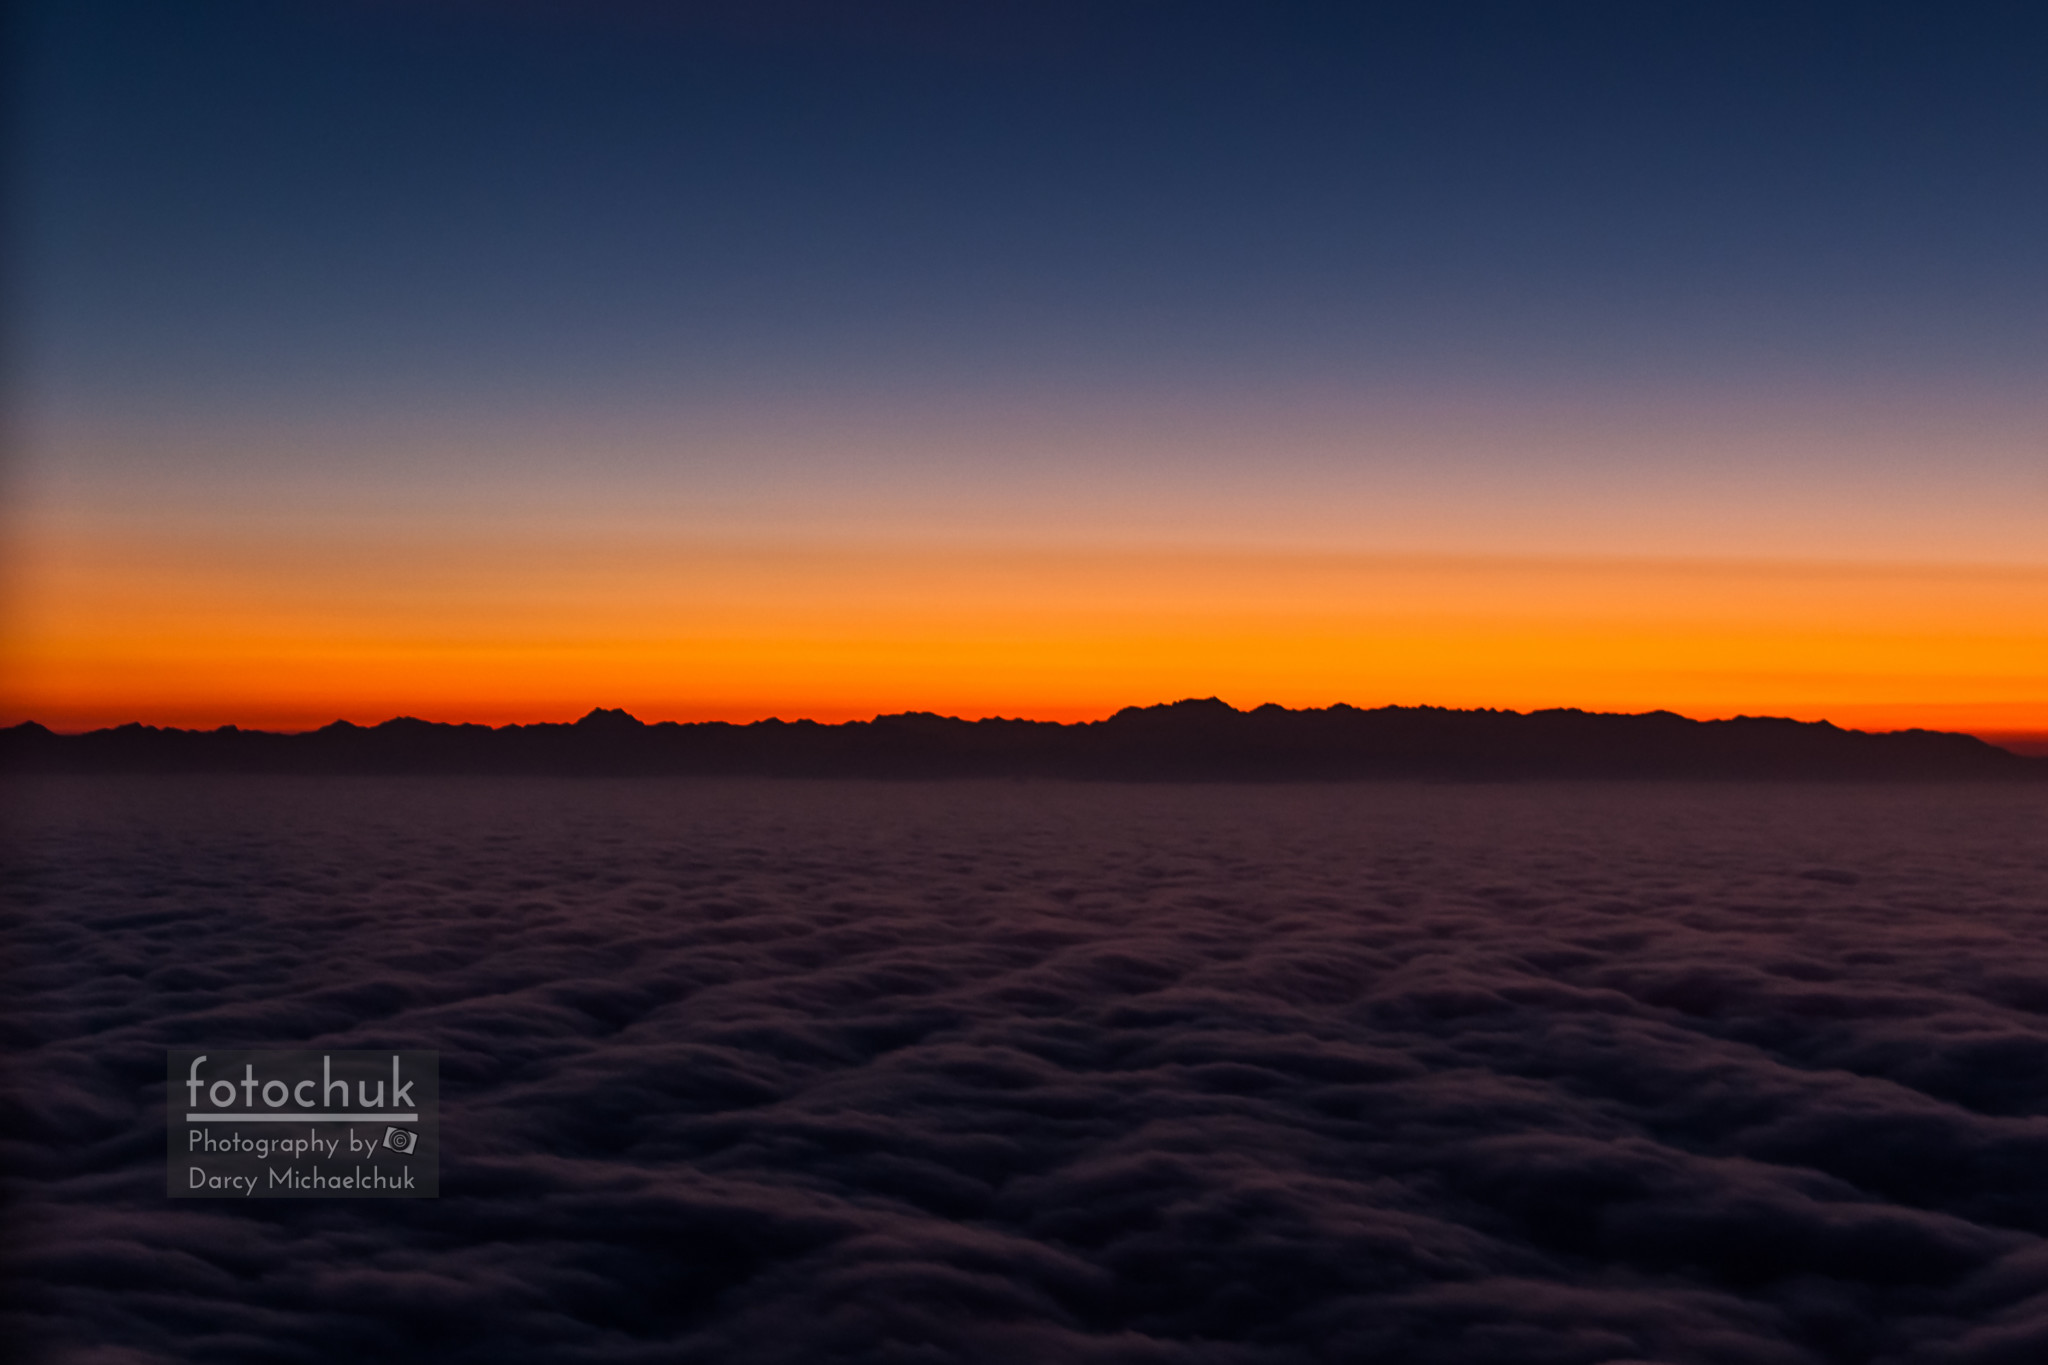 Mountain Silhouette Over Sea of Clouds